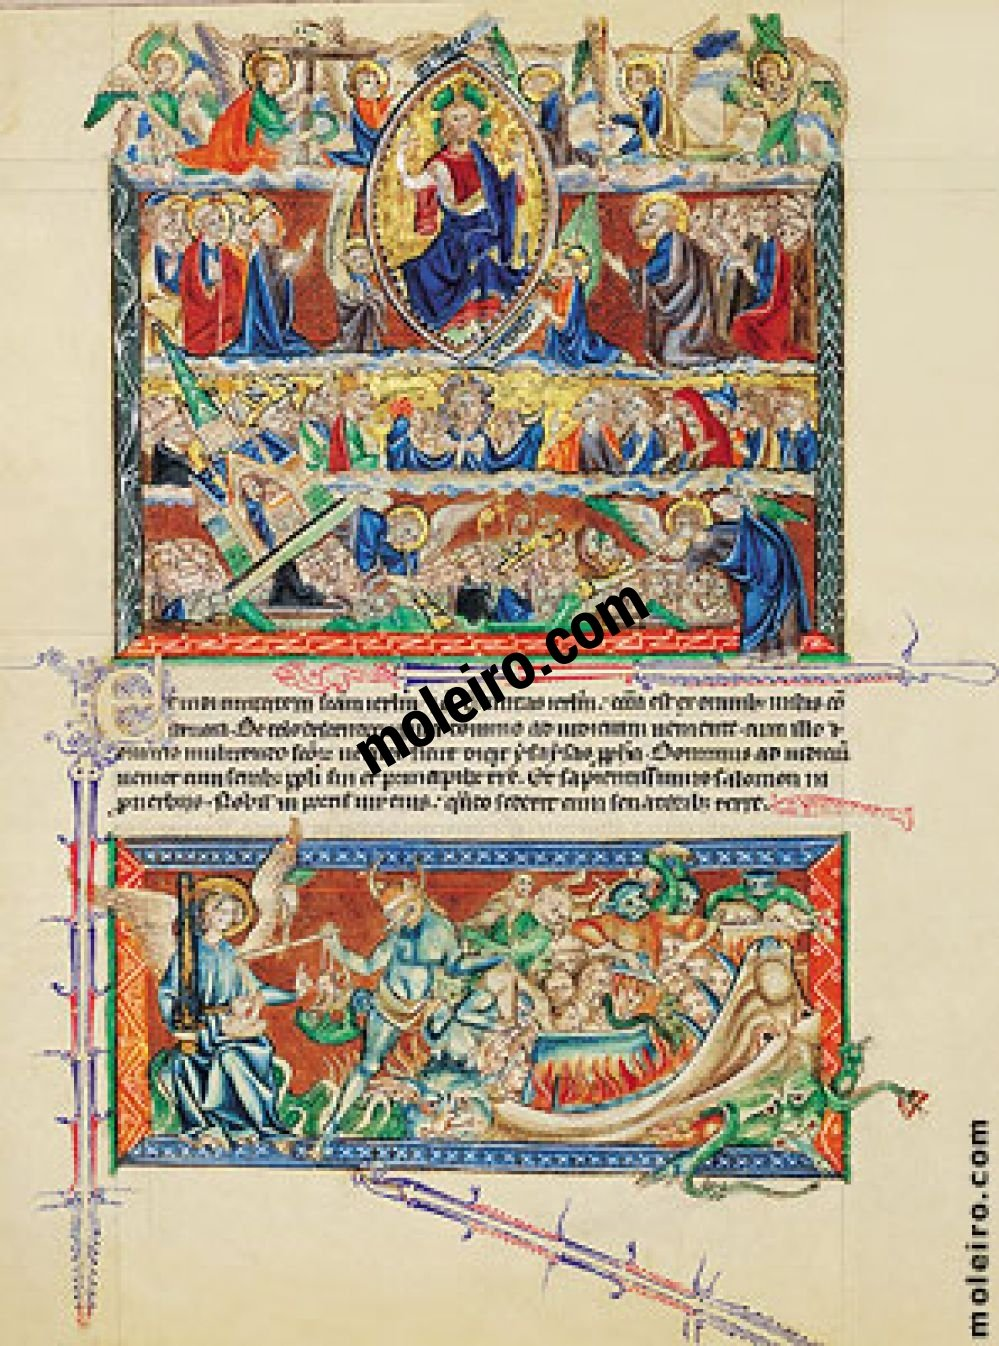 Gulbenkian Apocalypse f. 73v, The Lord's Judgement